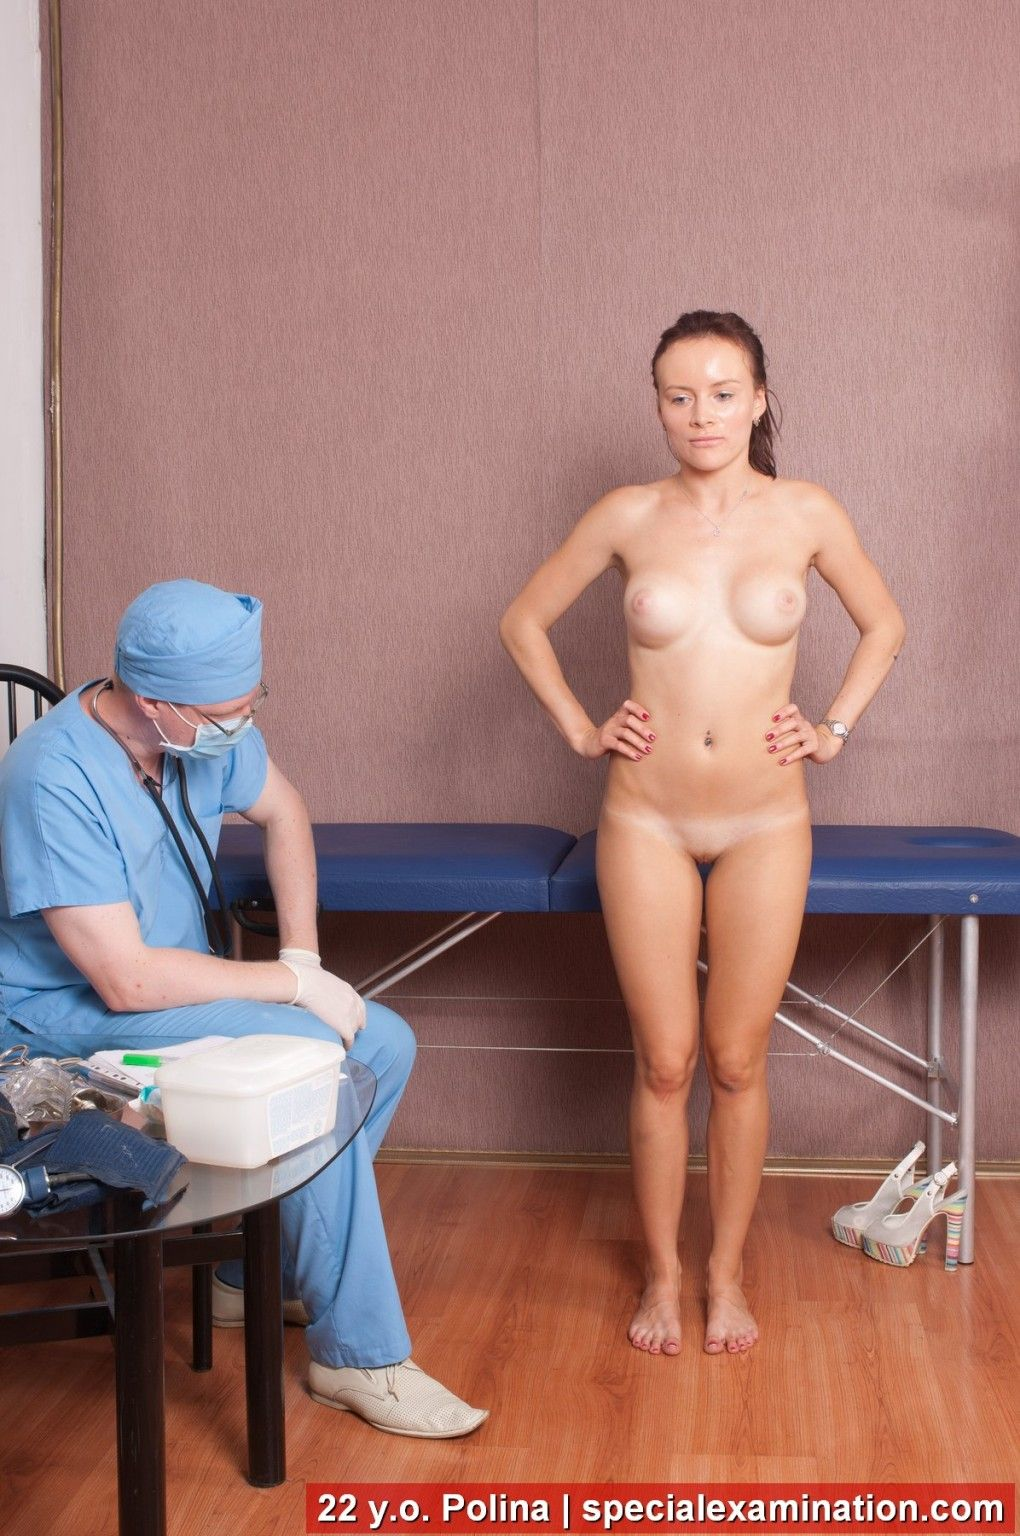 Doctor inspects all holes of his sub yielding